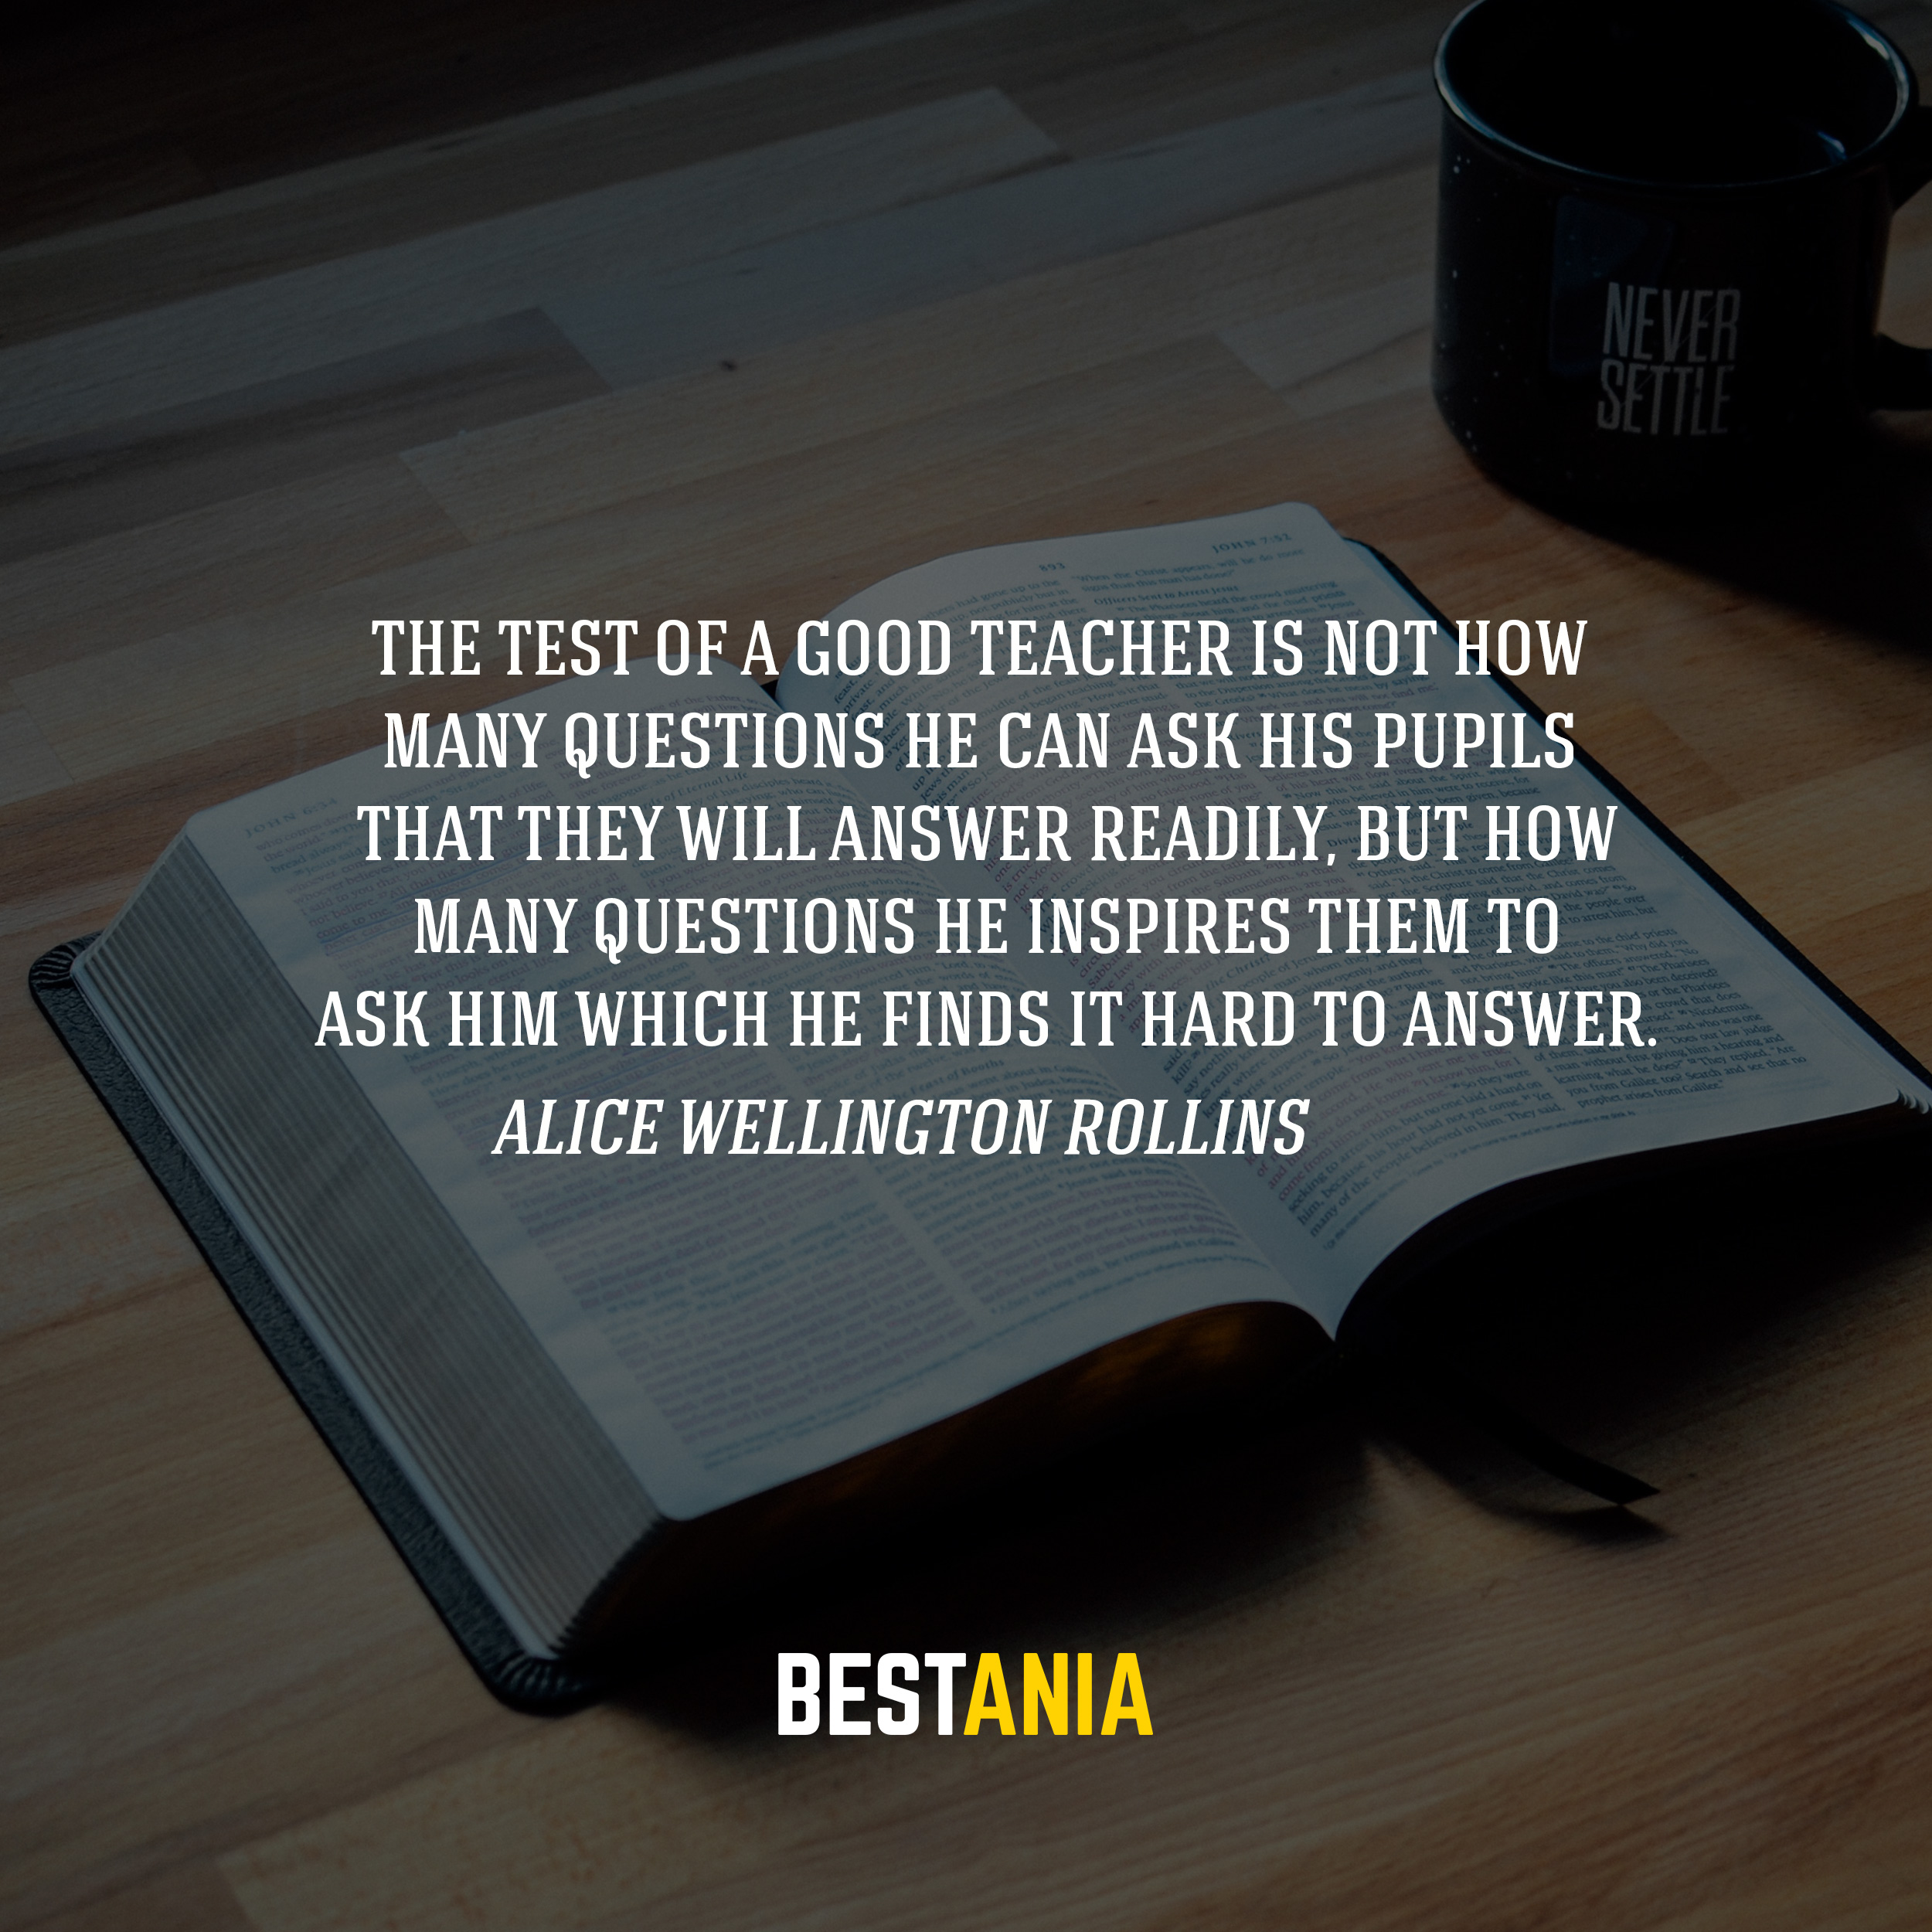 The test of a good teacher is not how many questions he can ask his pupils that they will answer readily, but how many questions he inspires them to ask him which he finds it hard to answer. -Alice Wellington Rollins